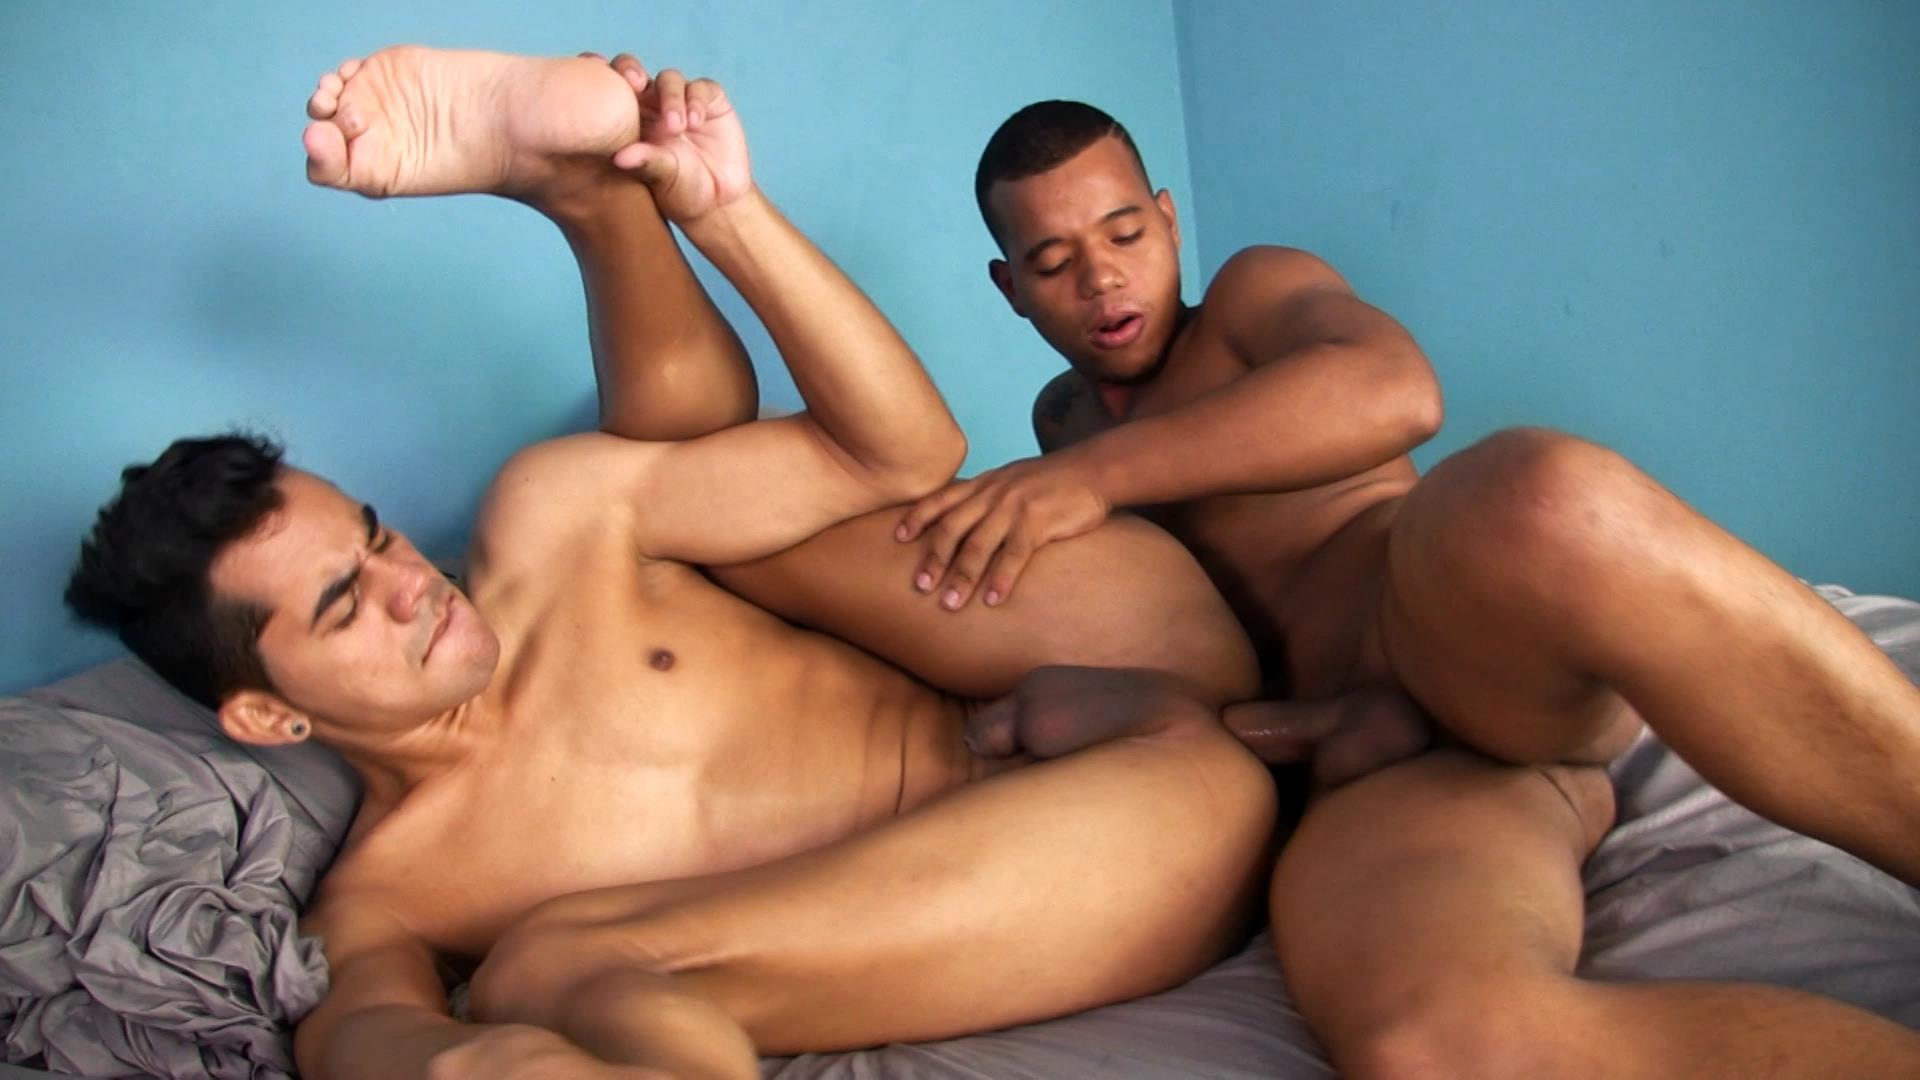 Gay mexican sex amateur guys enjoy a stud